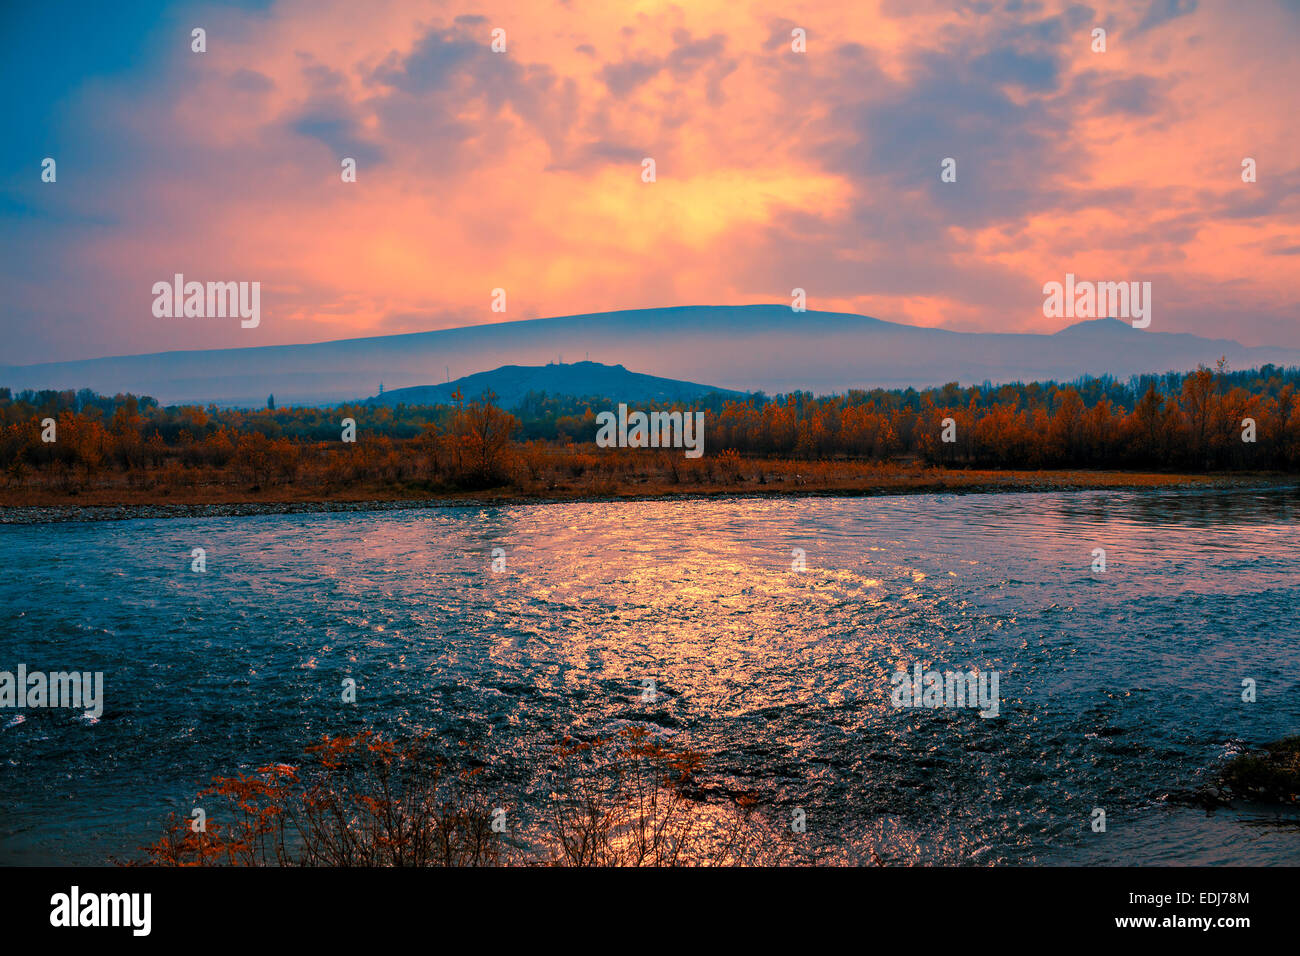 Foggy sunset over mountain river Stock Photo